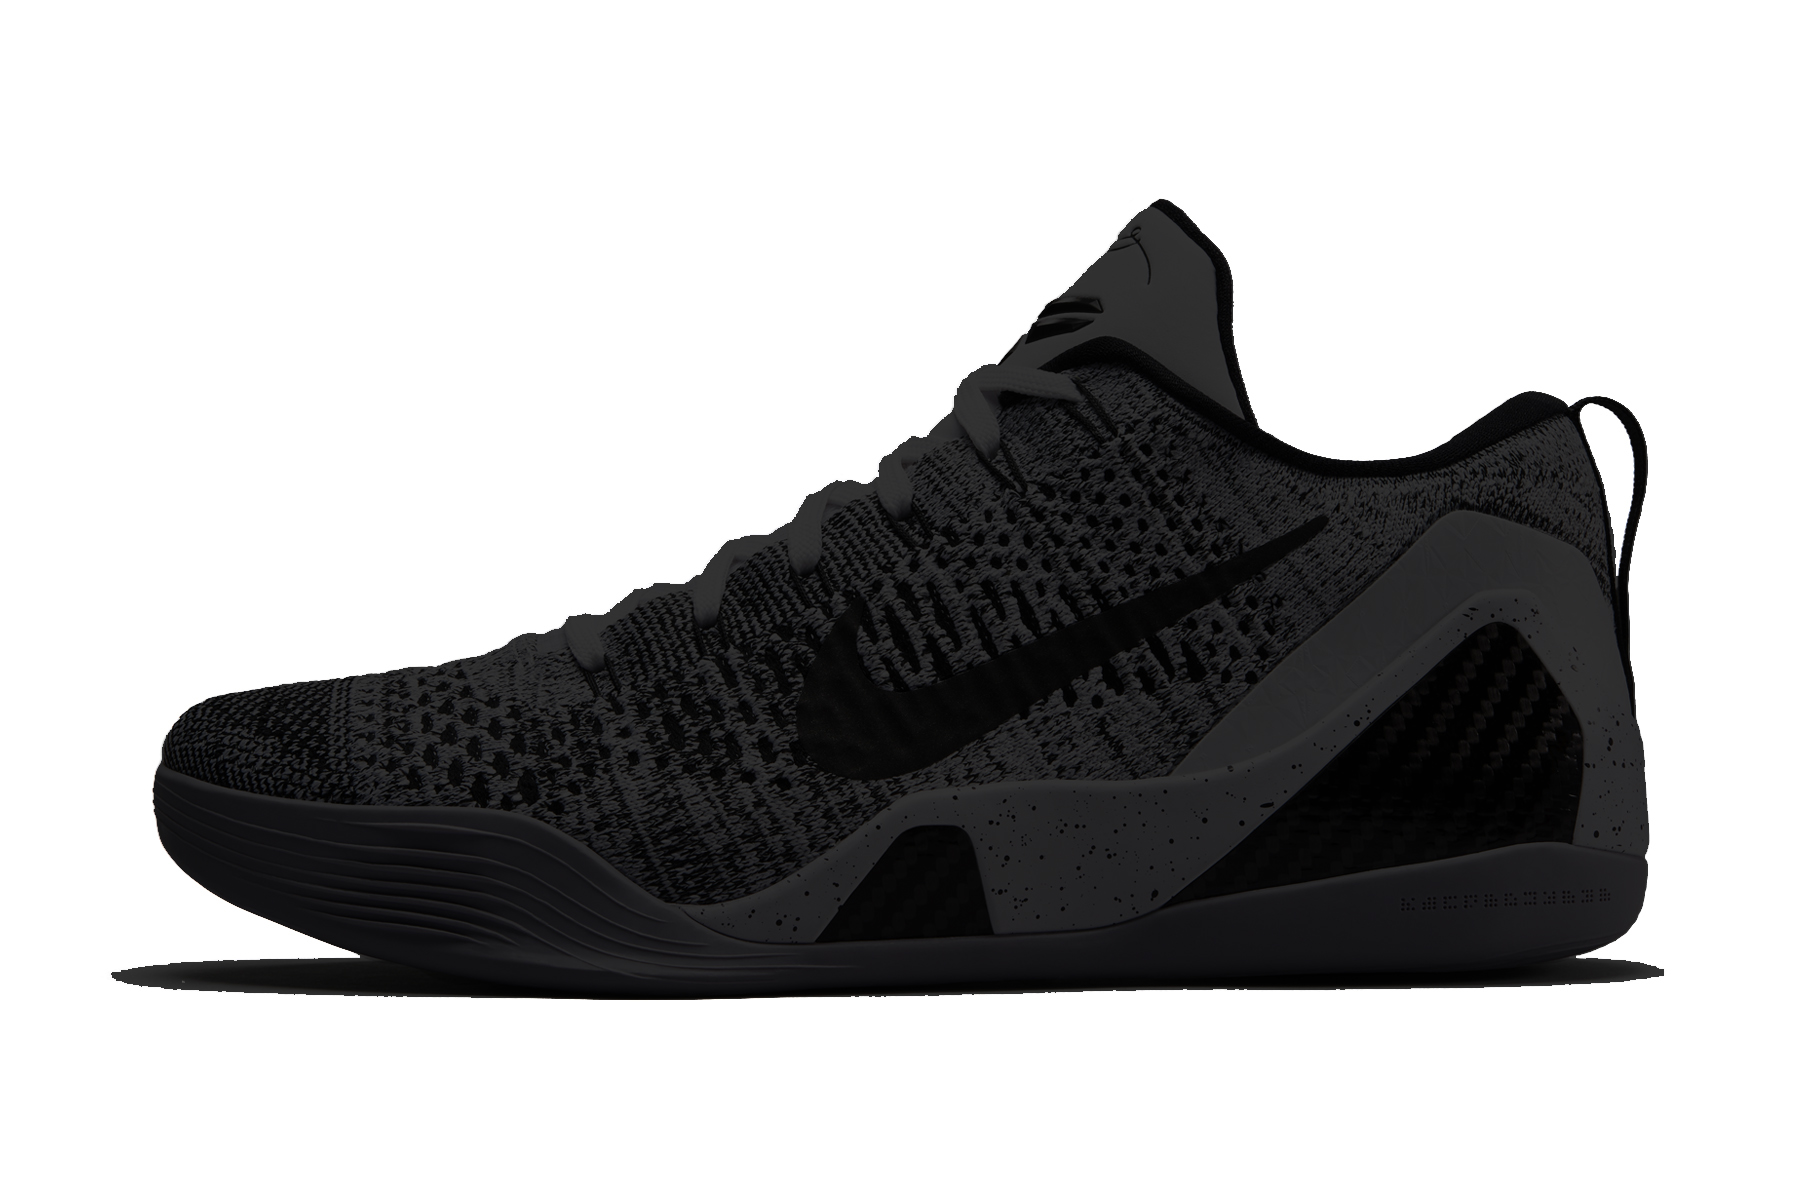 5bf26471be5 nike kobe X Archives - Page 5 of 5 - WearTesters